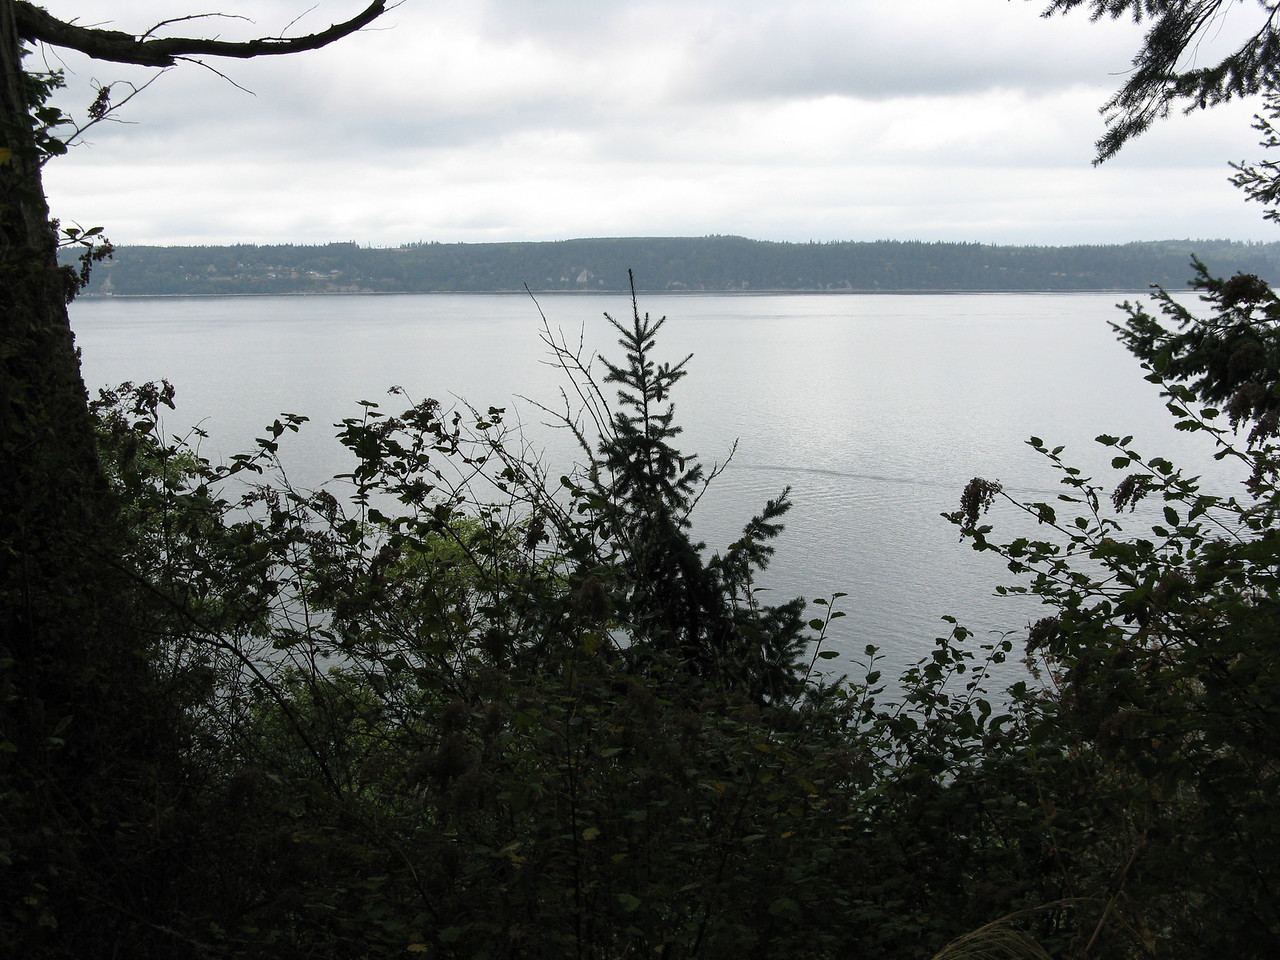 Whidbey Island in the distance and Saratoga Passage.